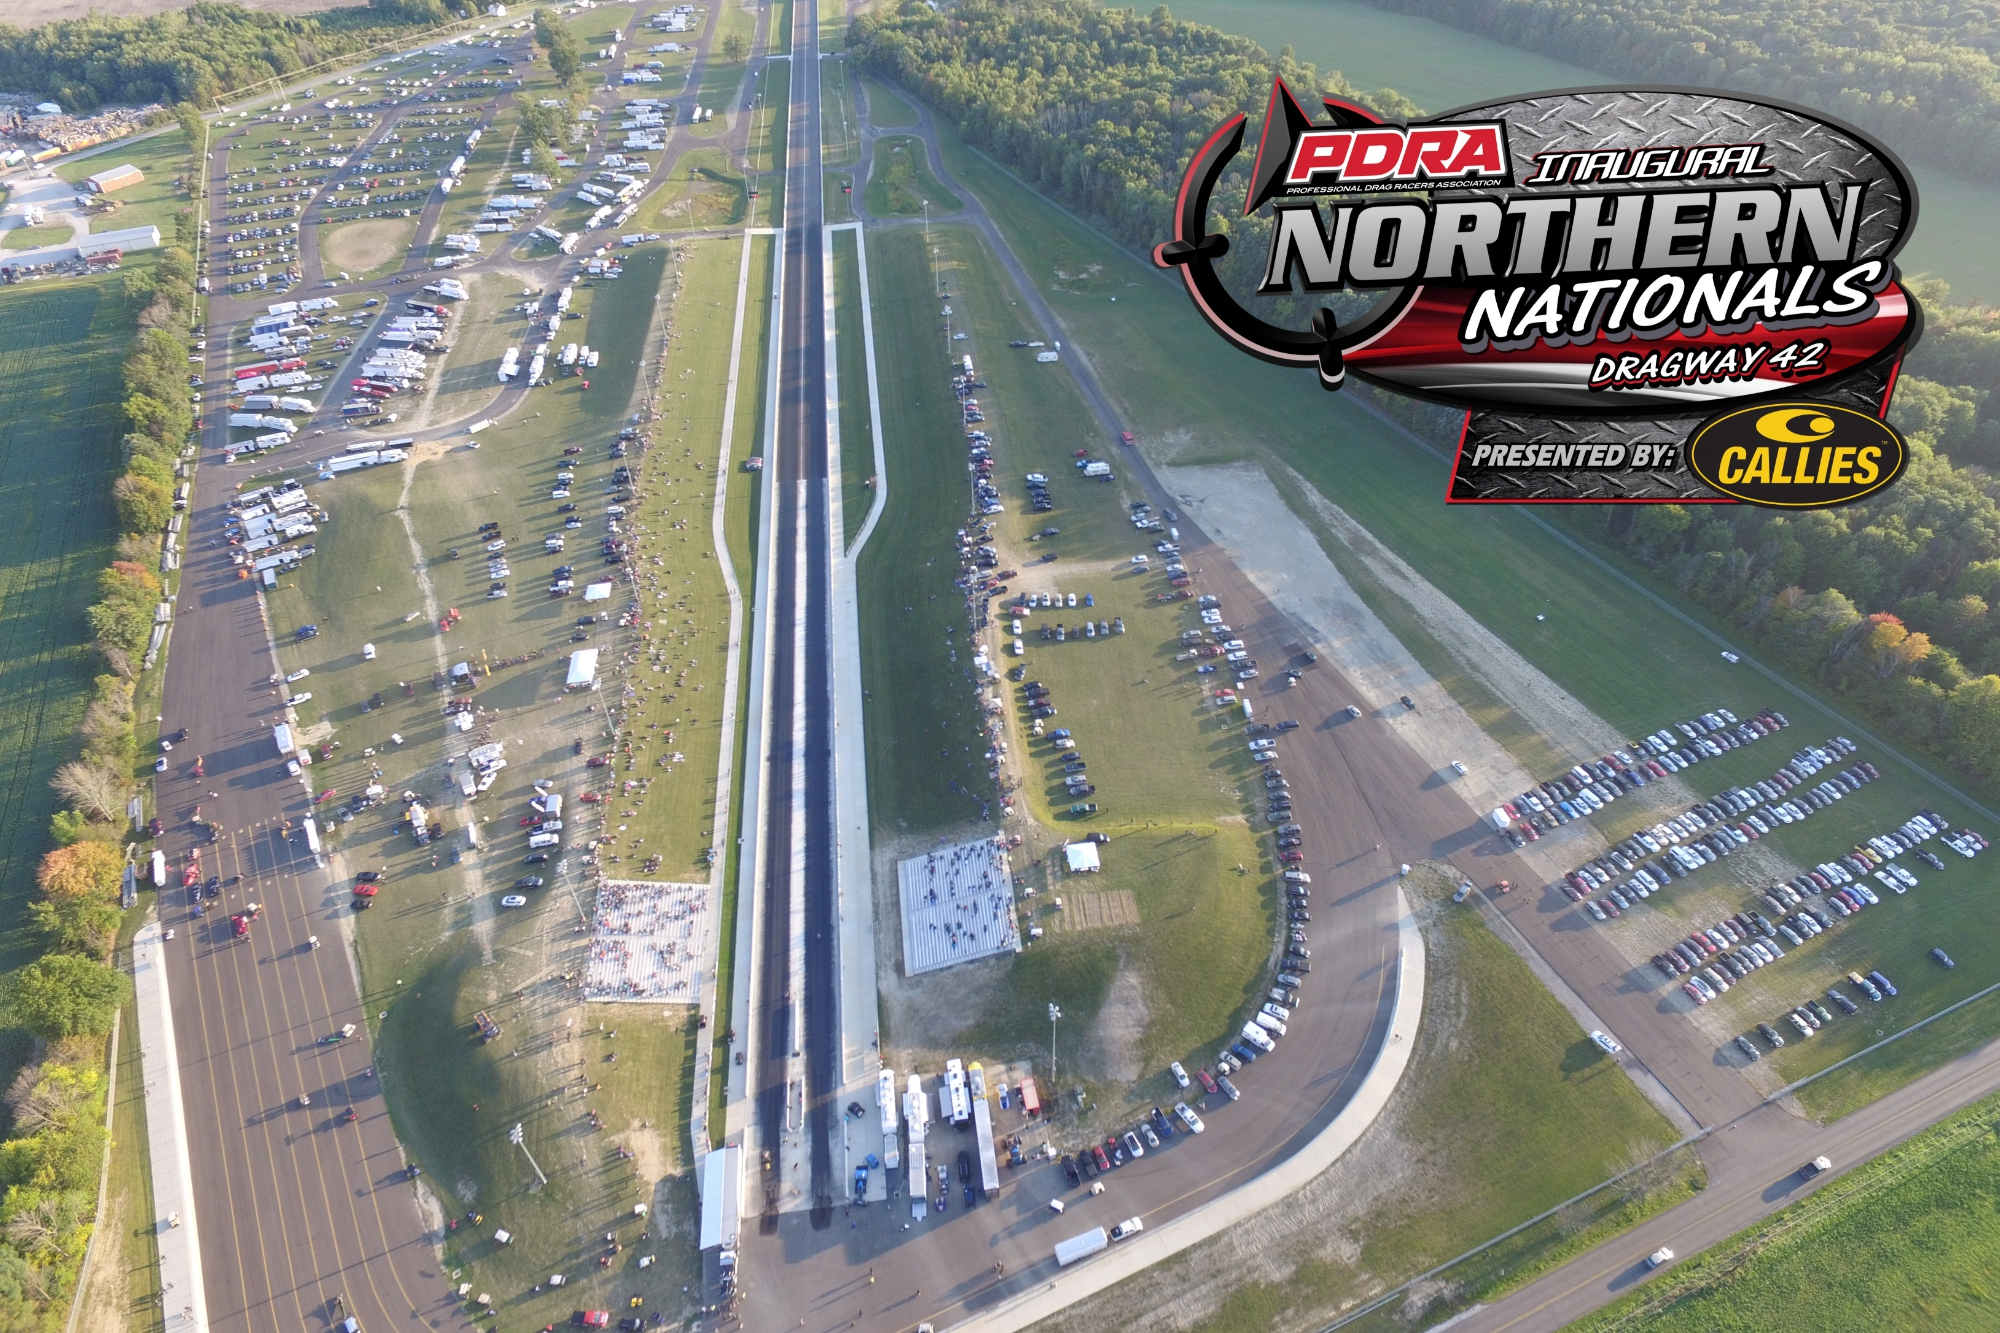 The Inaugural Pdra Northern Nationals Presented Byies Performance Products Will Take Place July 18 20 At Dragway 42